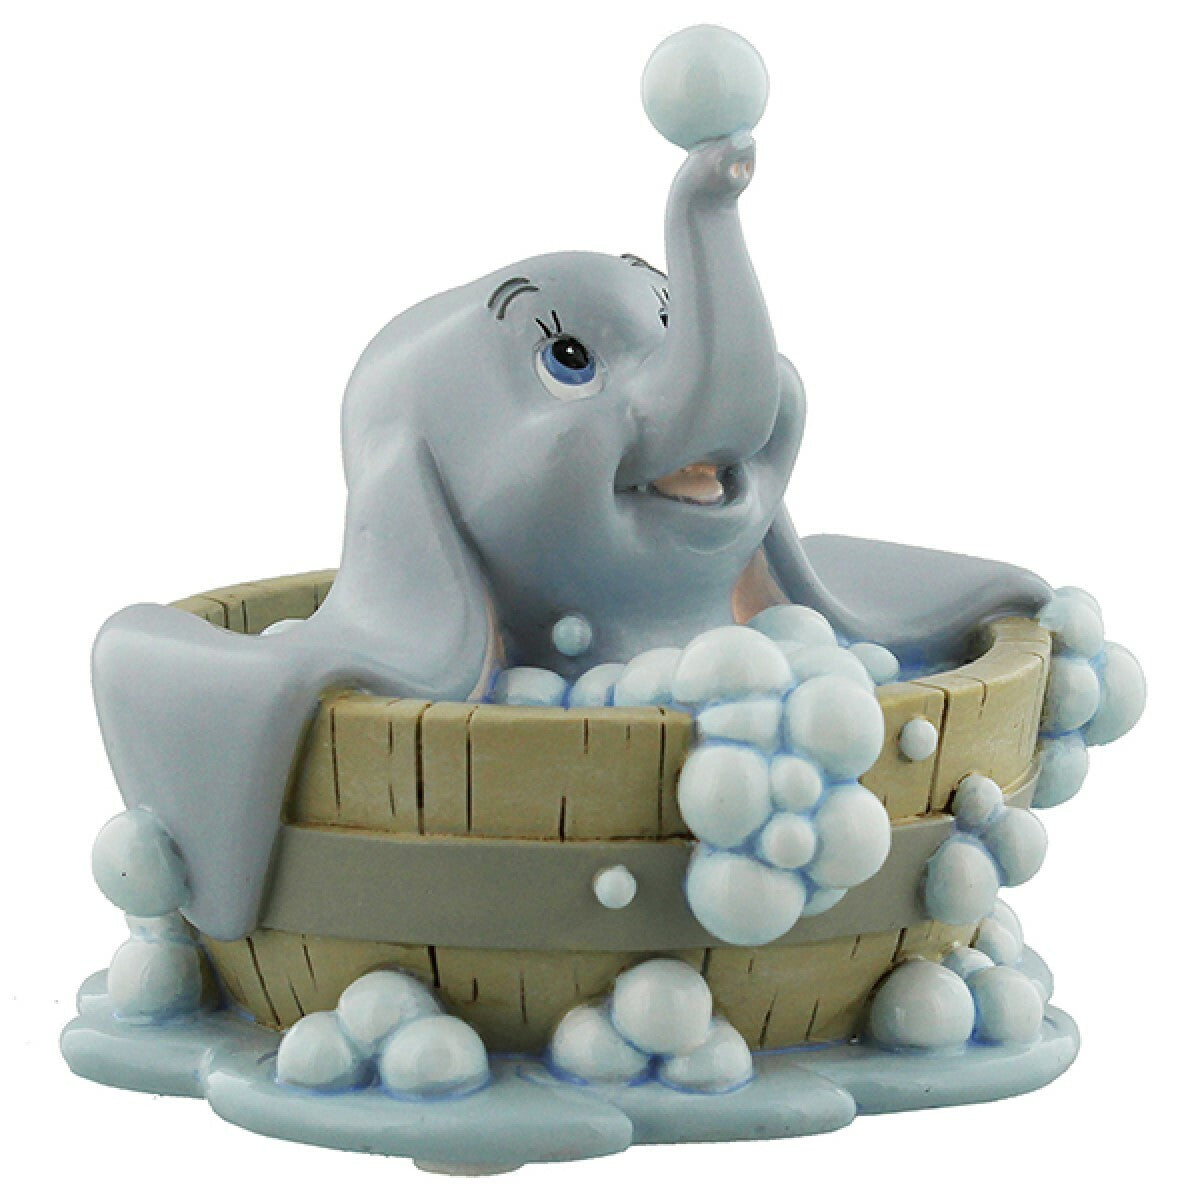 Disney Dumbo In Bath Figurine